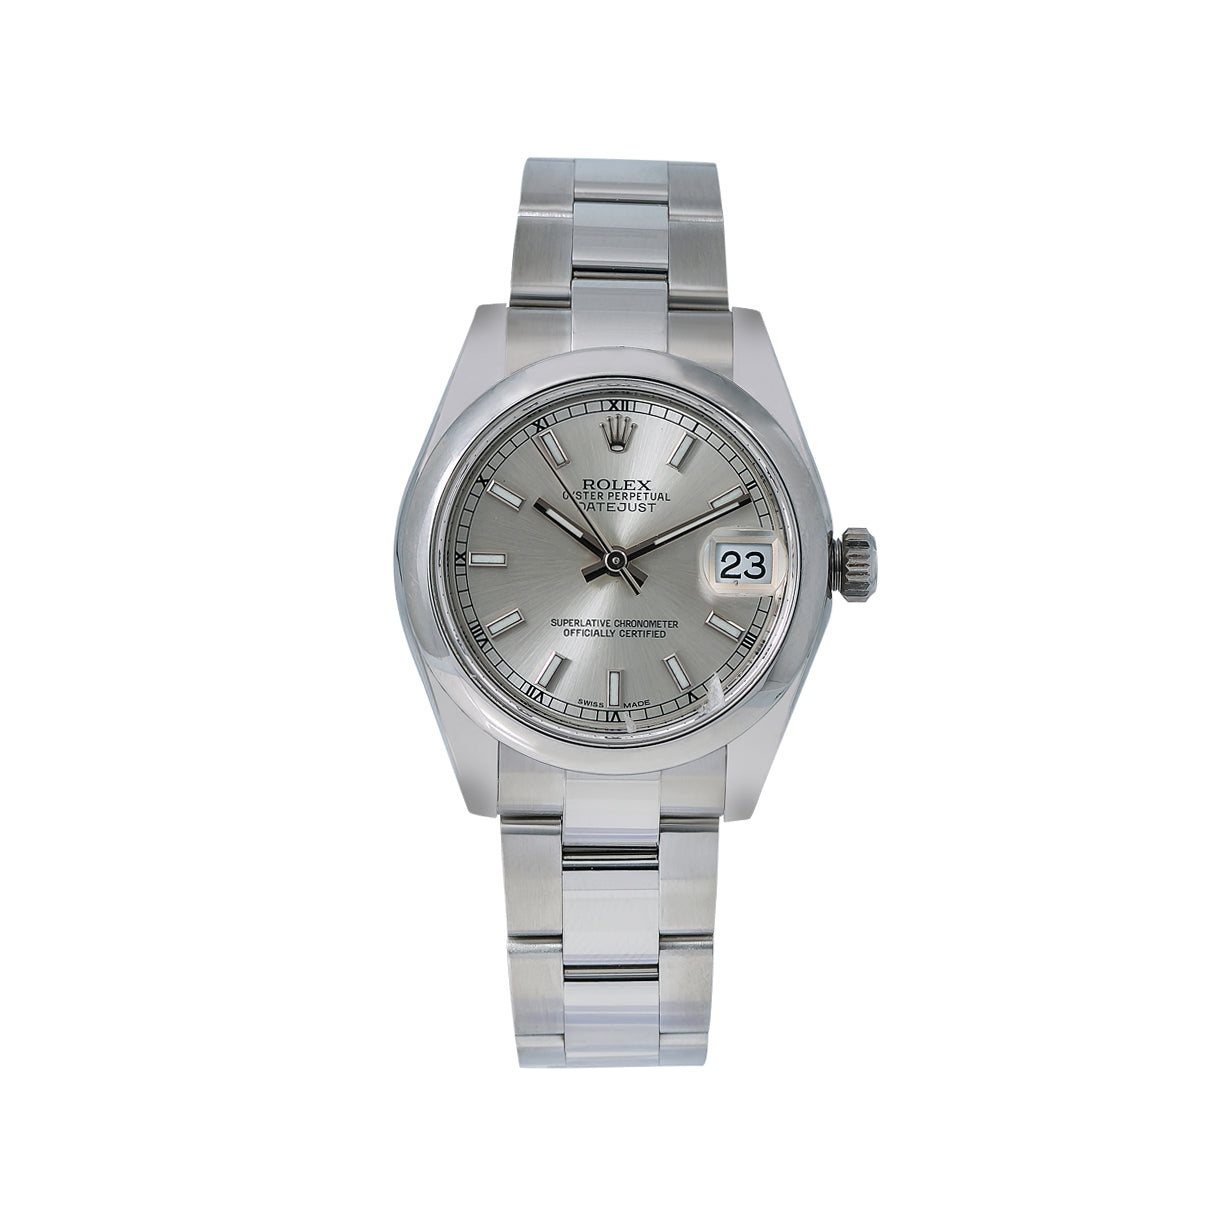 Rolex Datejust 178240 31MM Silver Dial With Stainless Steel Bracelet